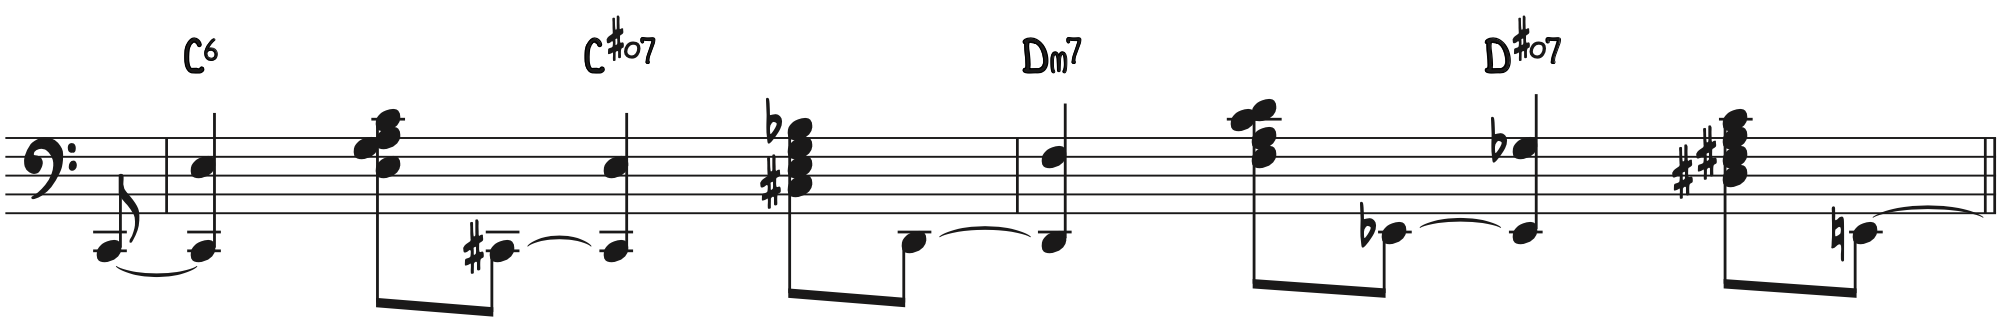 Left Hand Stride Piano Exercise—Rolled 10ths